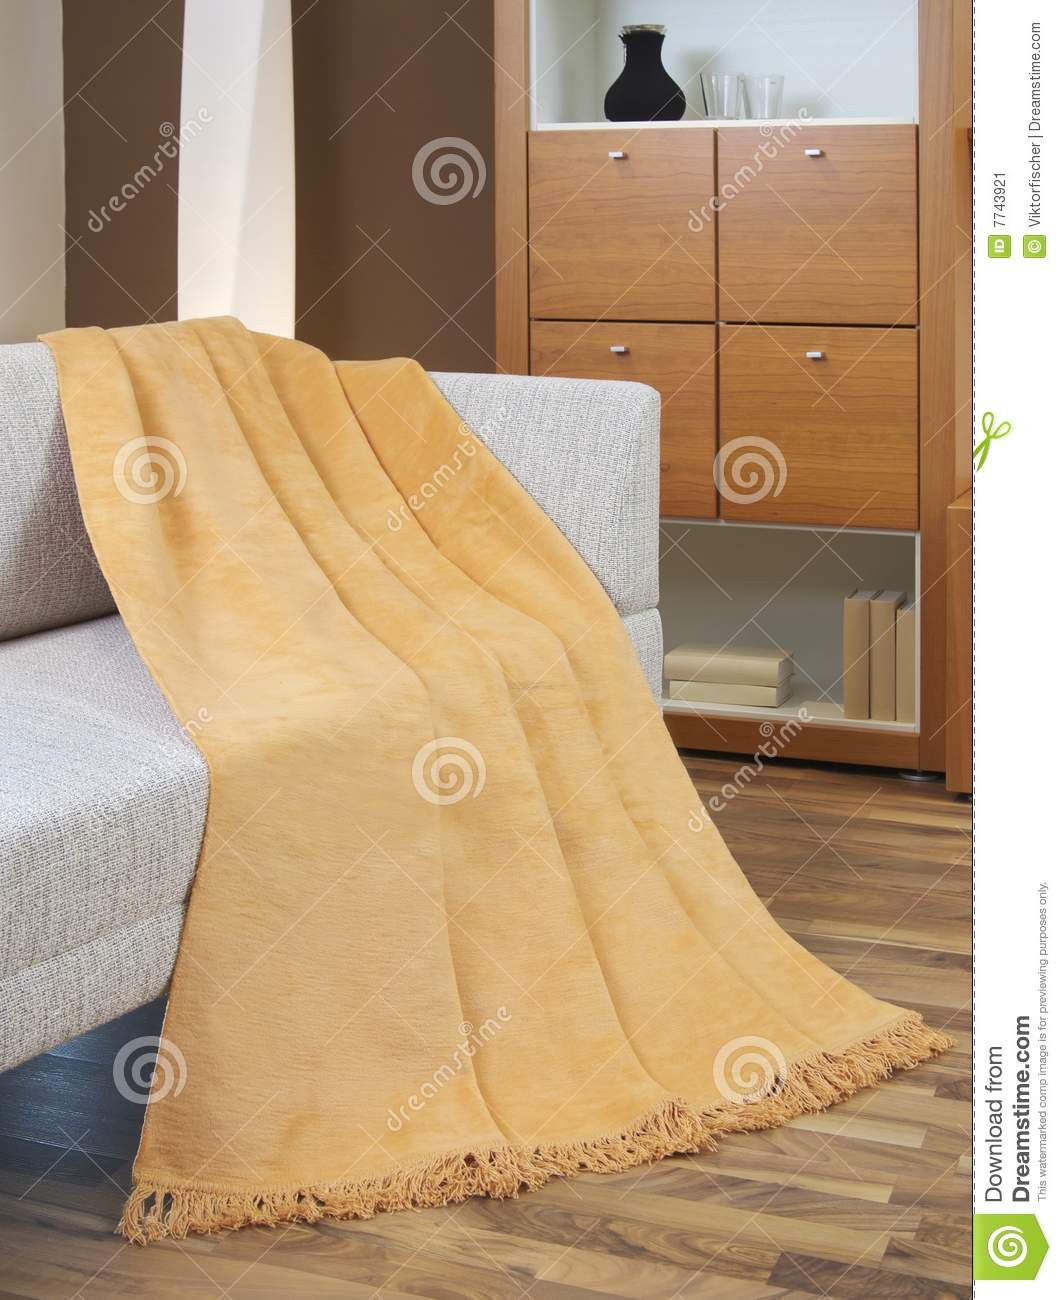 Blanket Draped Over A Settee Stock Image Image 7743921